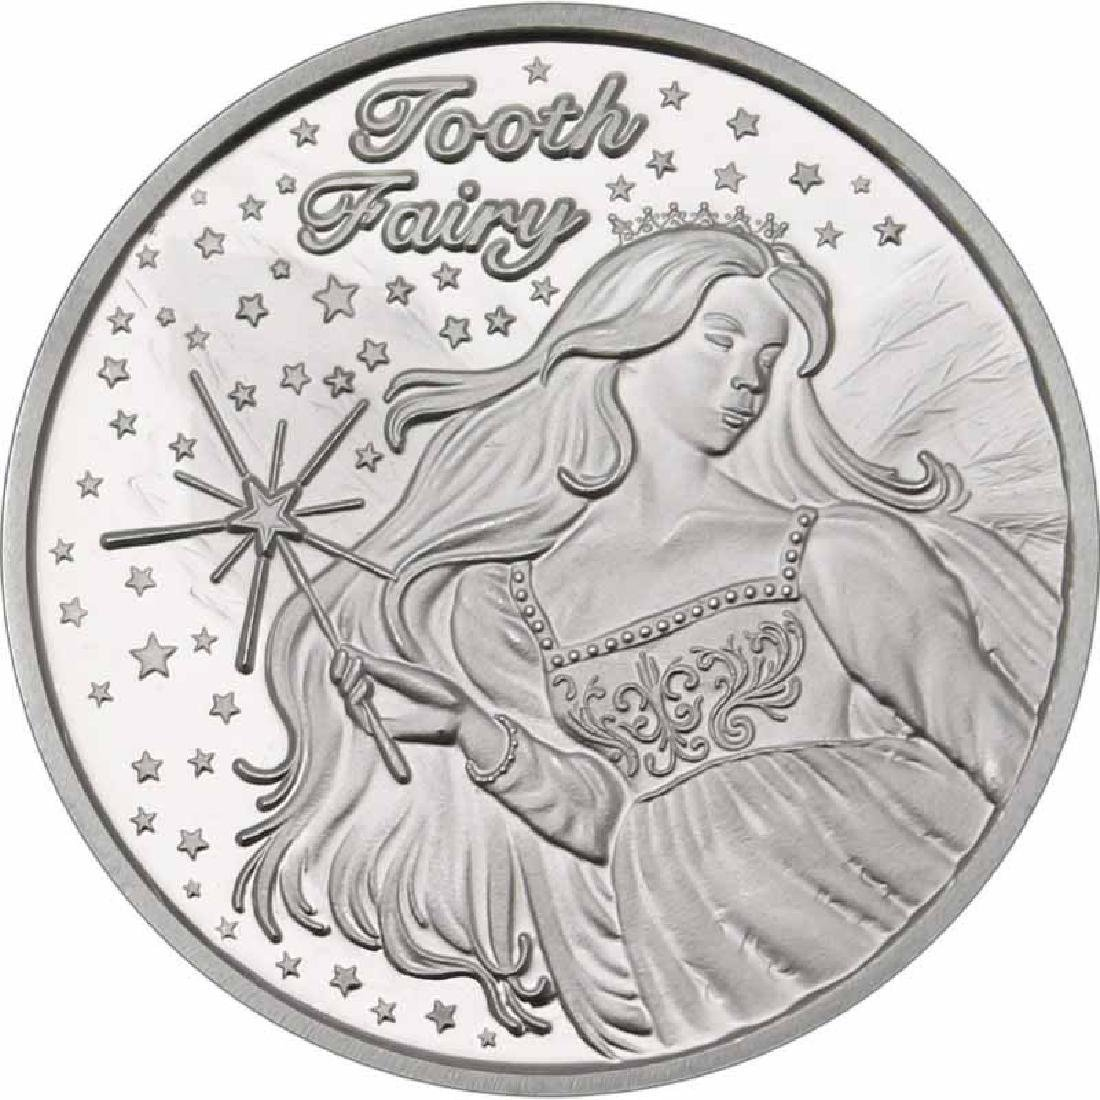 Tooth Fairy .999 Silver 1 oz Round